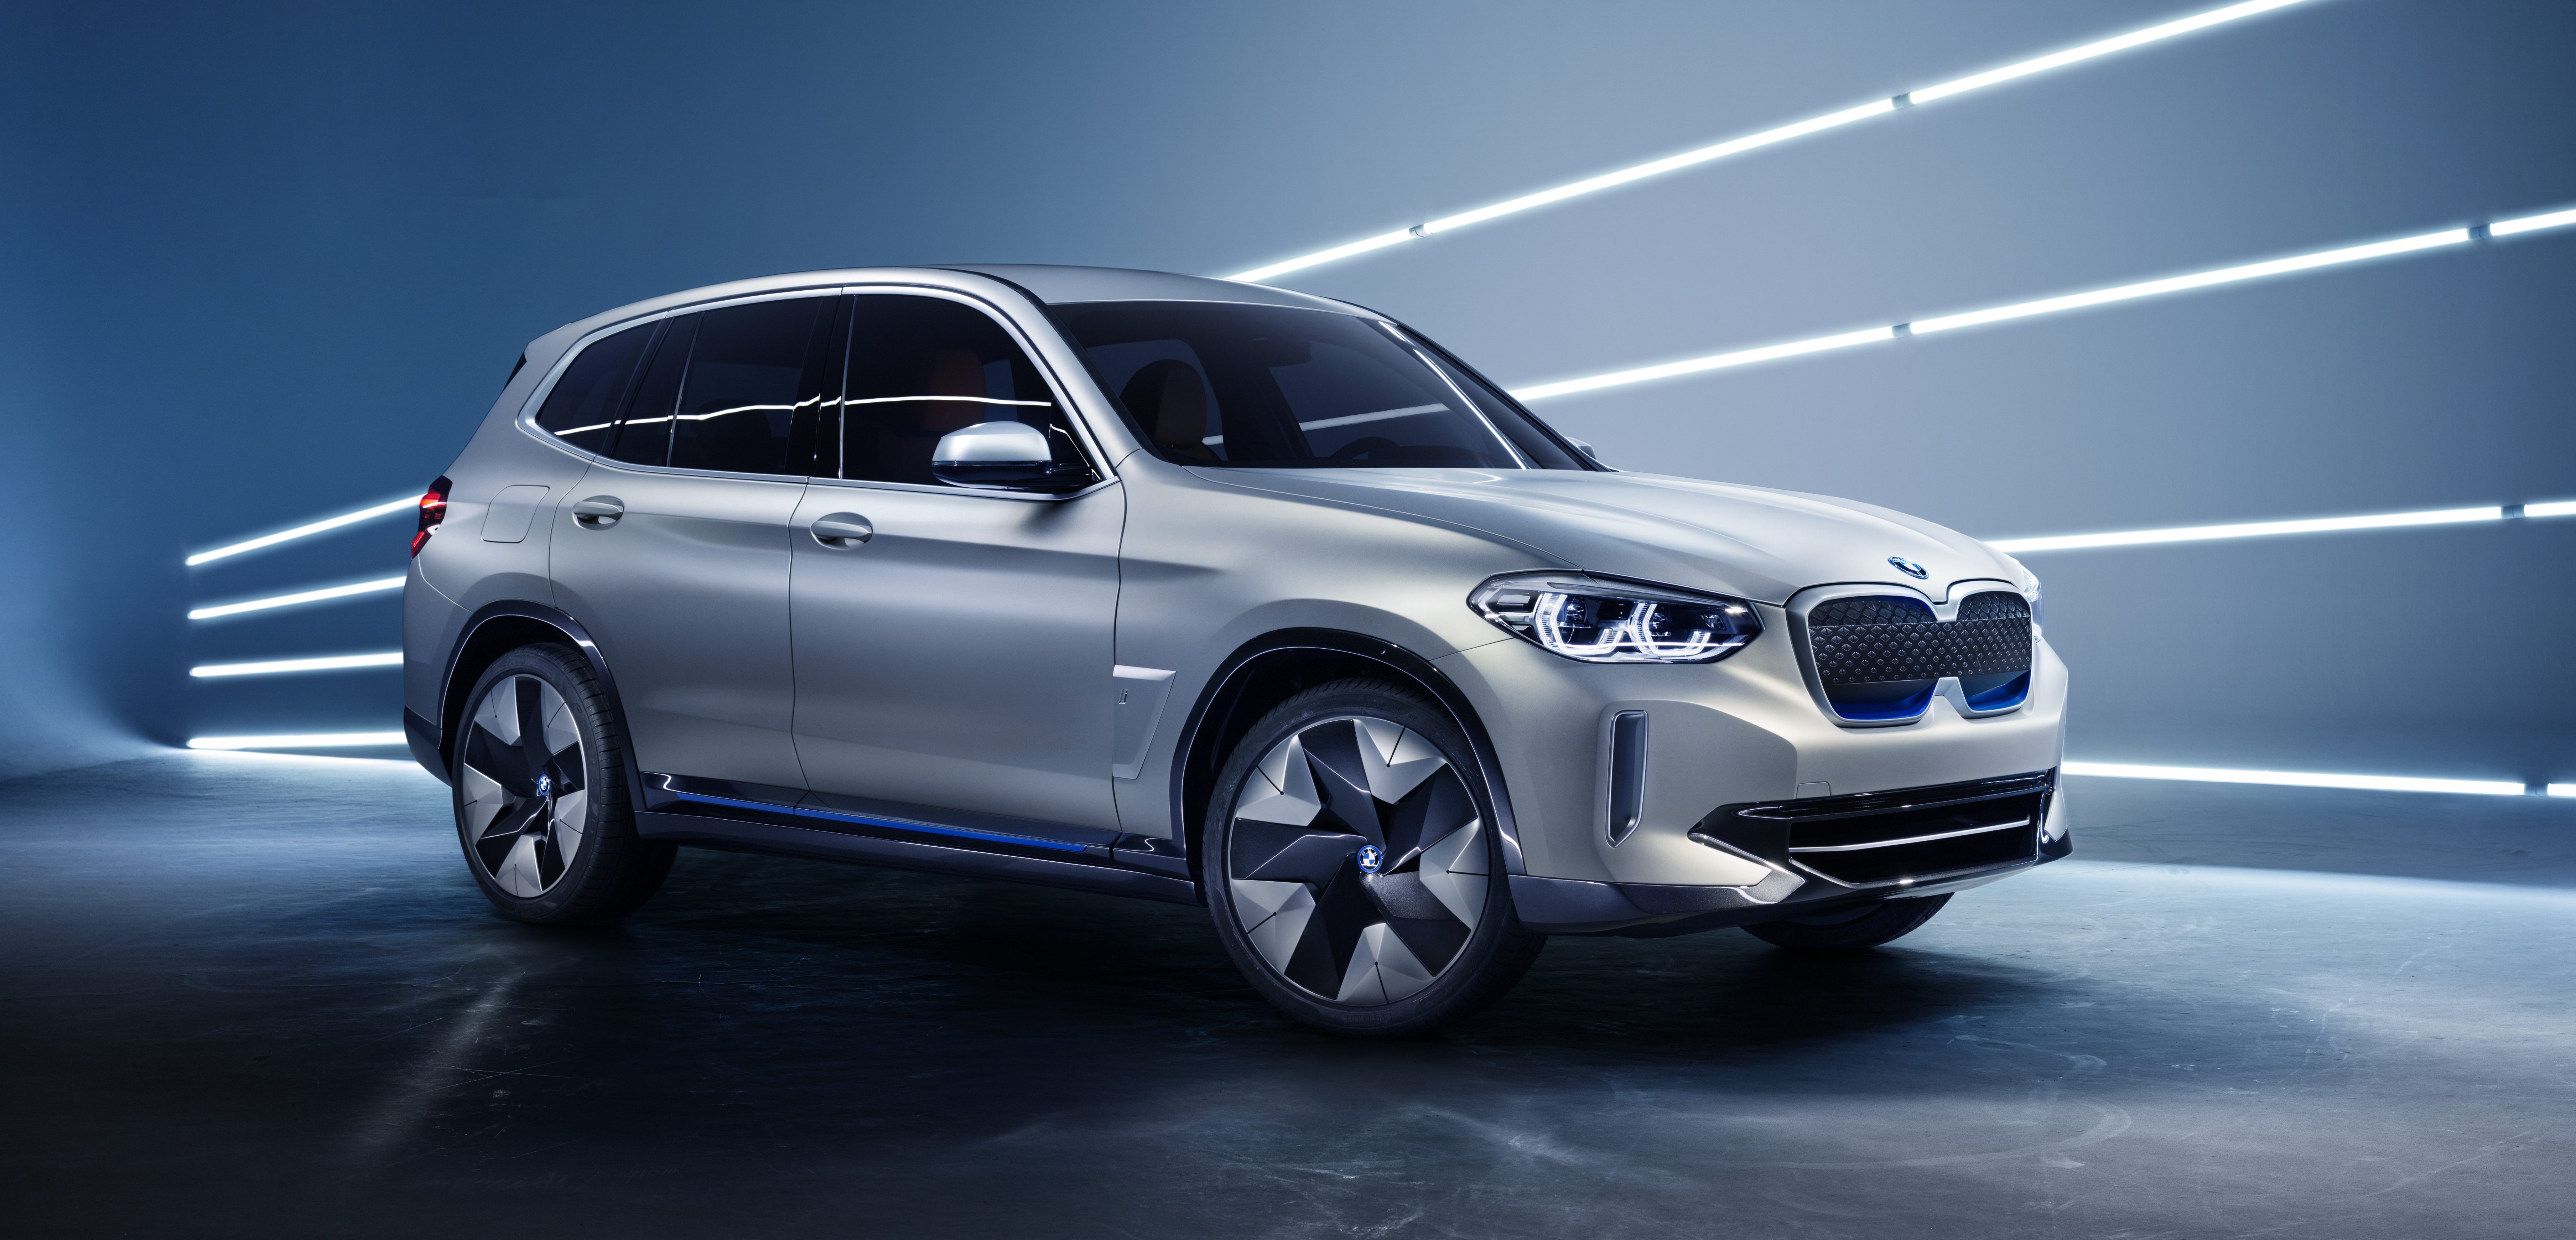 Bmw Unveils New All Electric Ix3 Suv With 250 Miles Of Range And 150